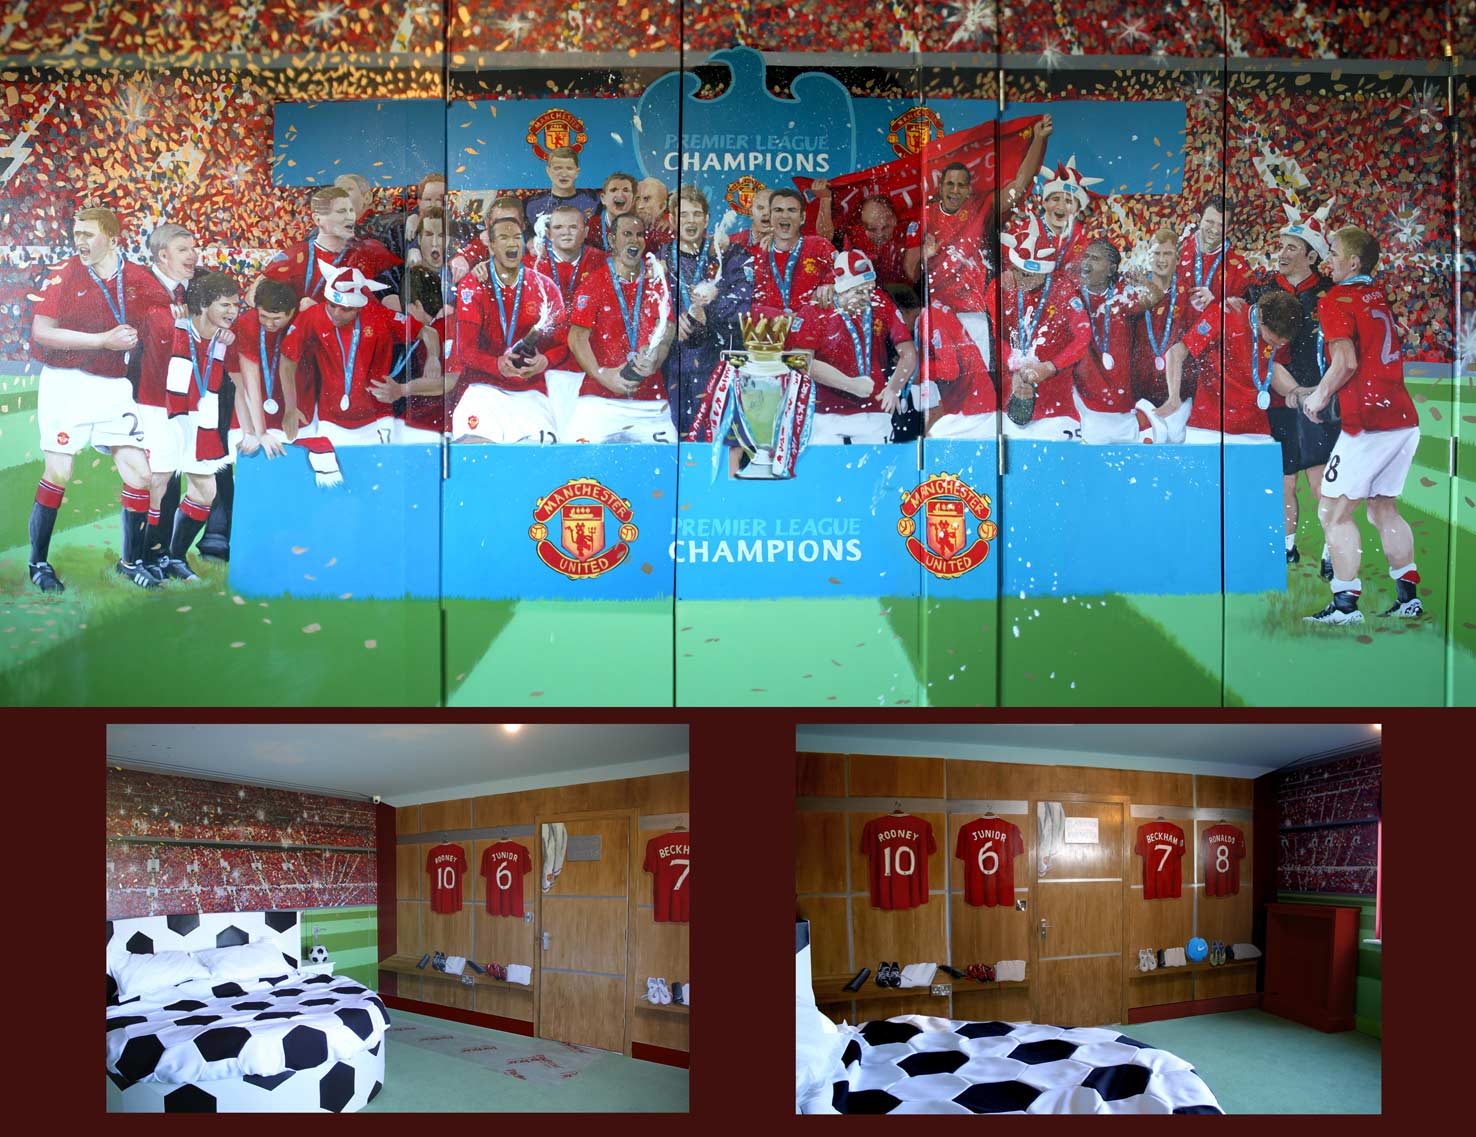 Awesome Football Murals Grasscloth Wallpaper. Champions Football Stars Home Wall  Stickerremovable Kids ... Part 6